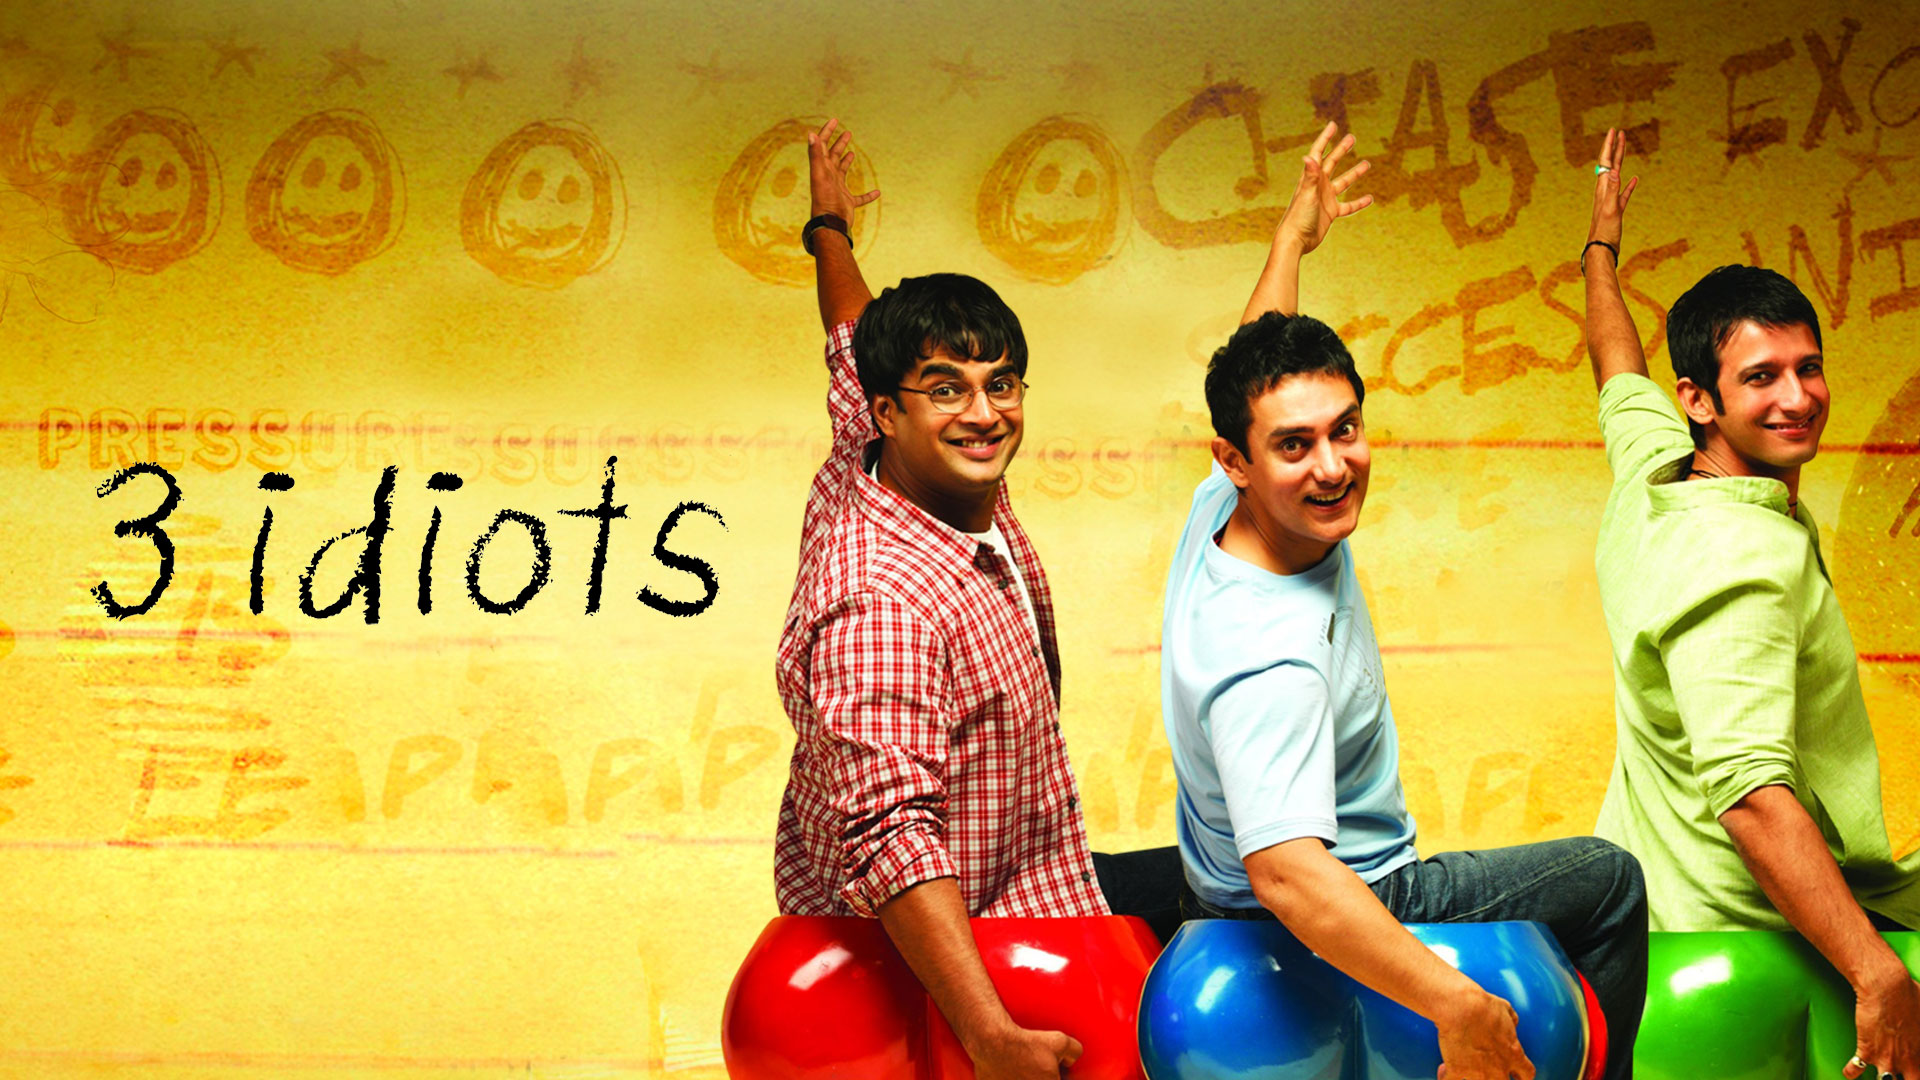 Watch 3 Idiots Hindi Movie Online in Full HD on SonyLIV